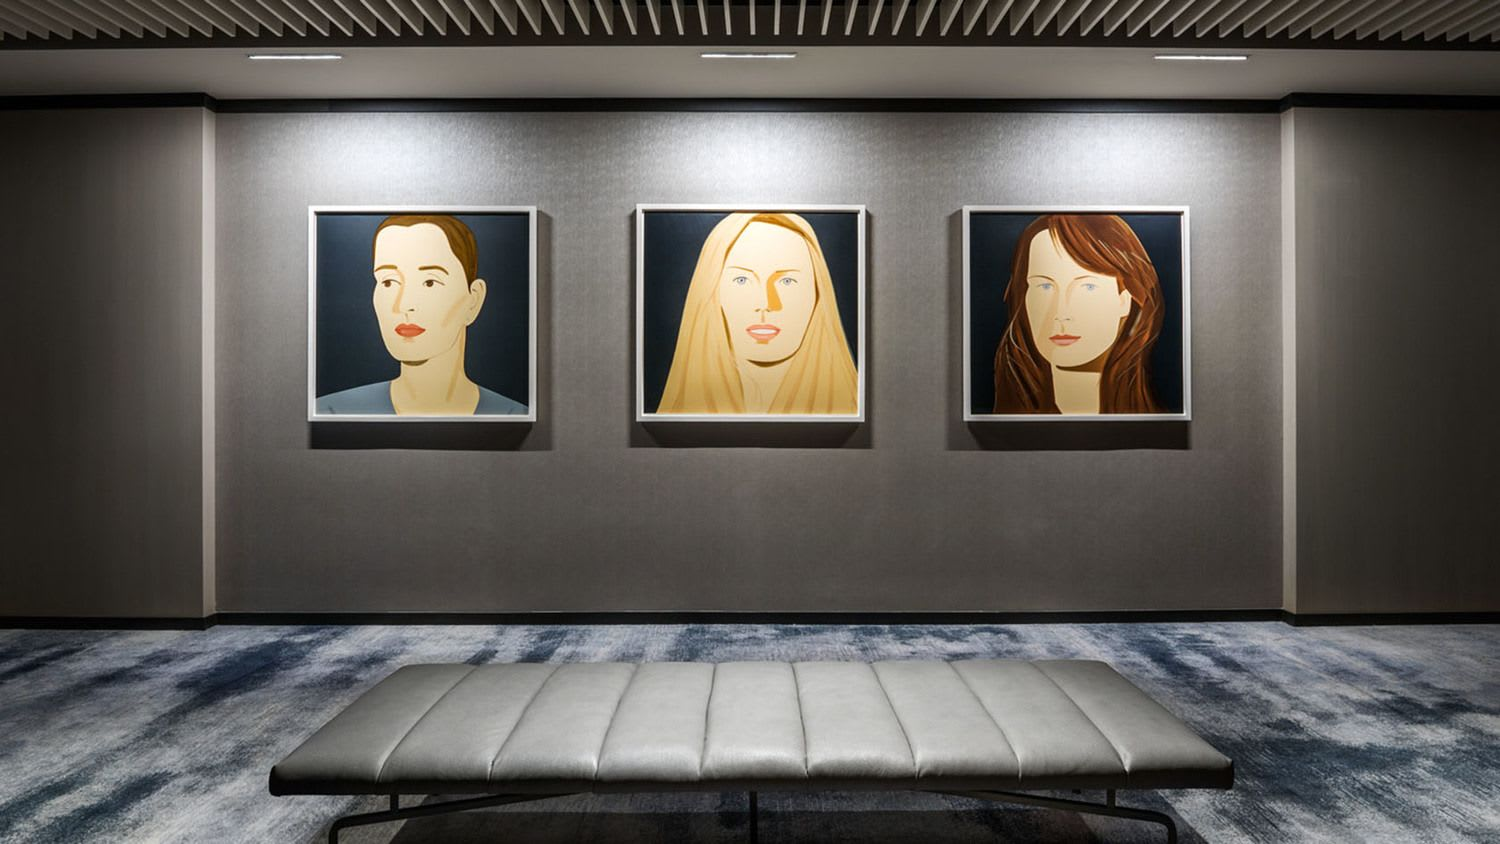 Art Curation by Culture Corps seen at The Langham, New York, Fifth Avenue, New York - Art Curation